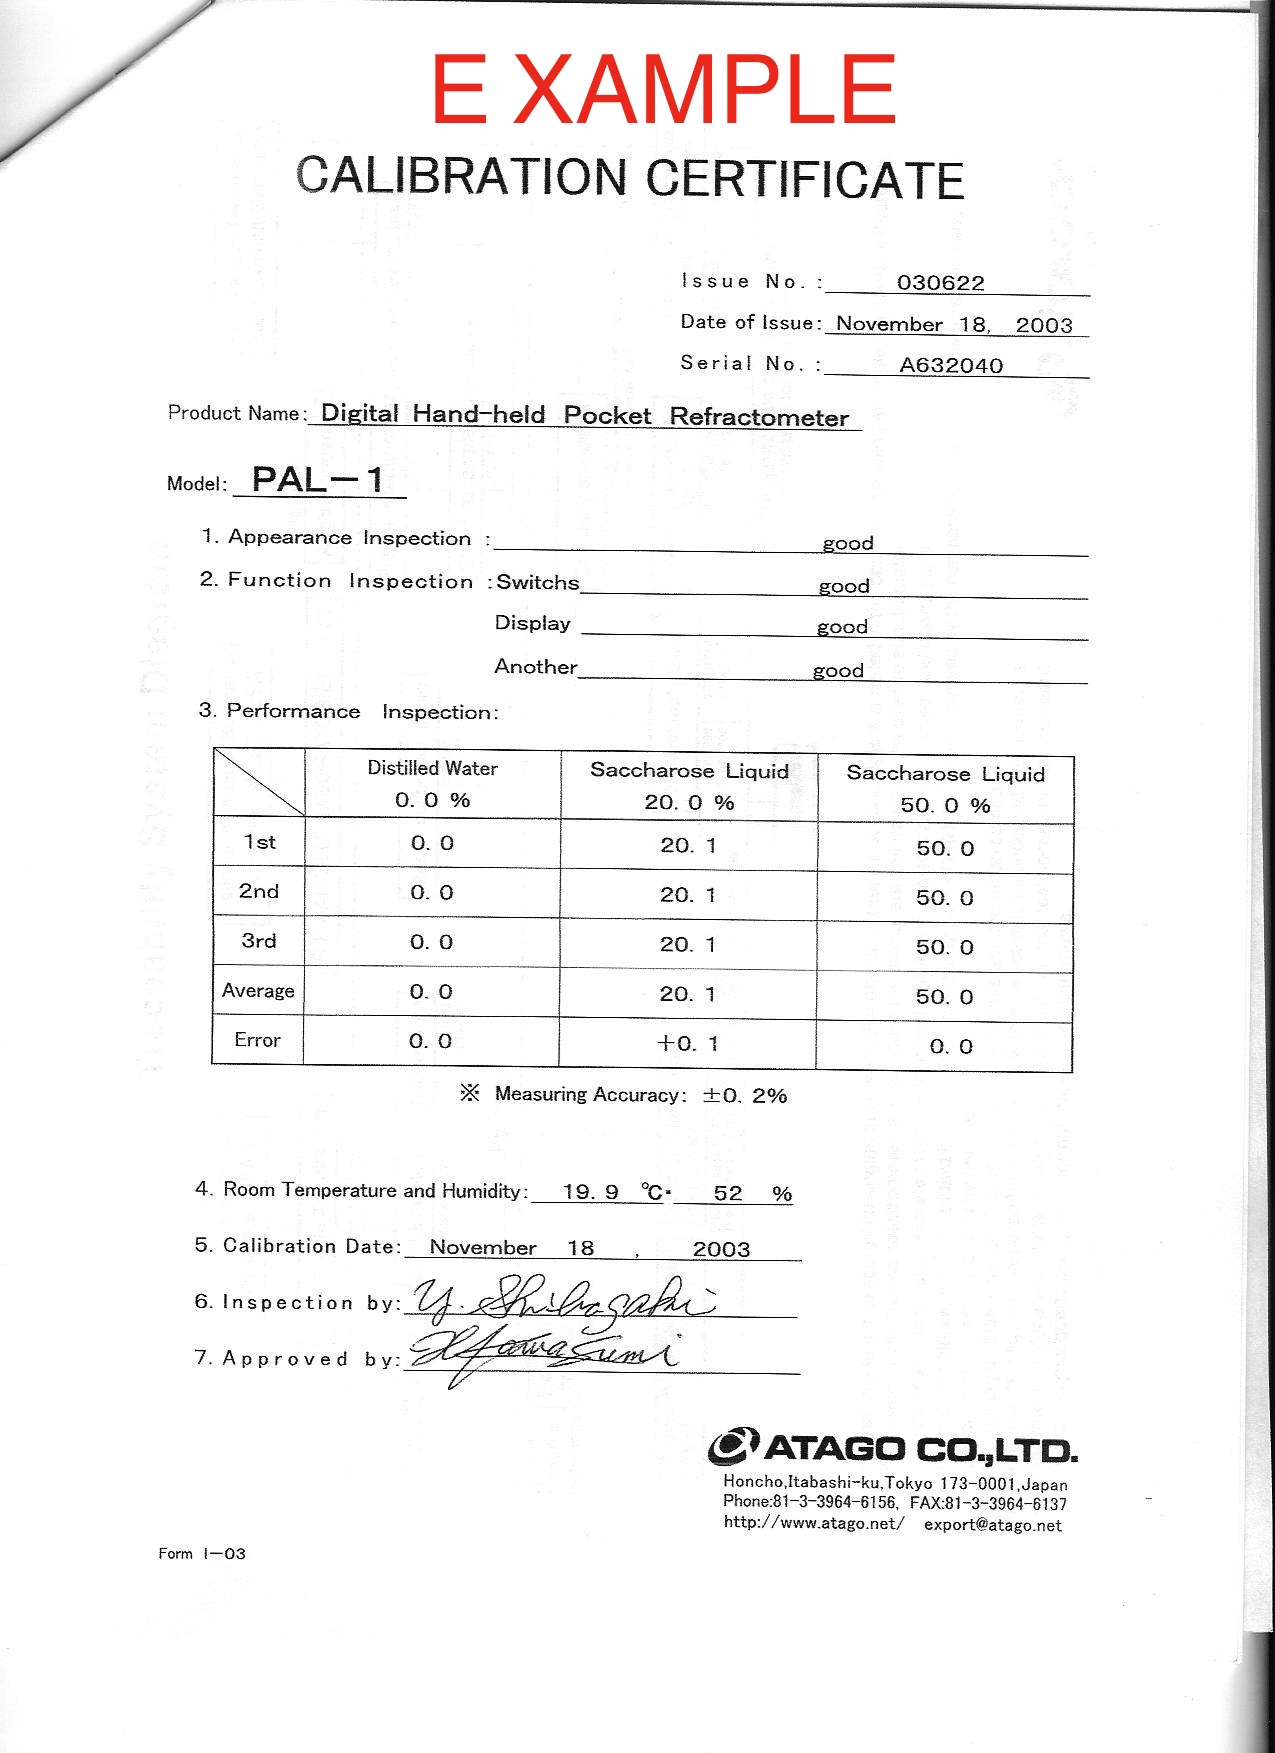 centrifuge calibration certificate sample gallery